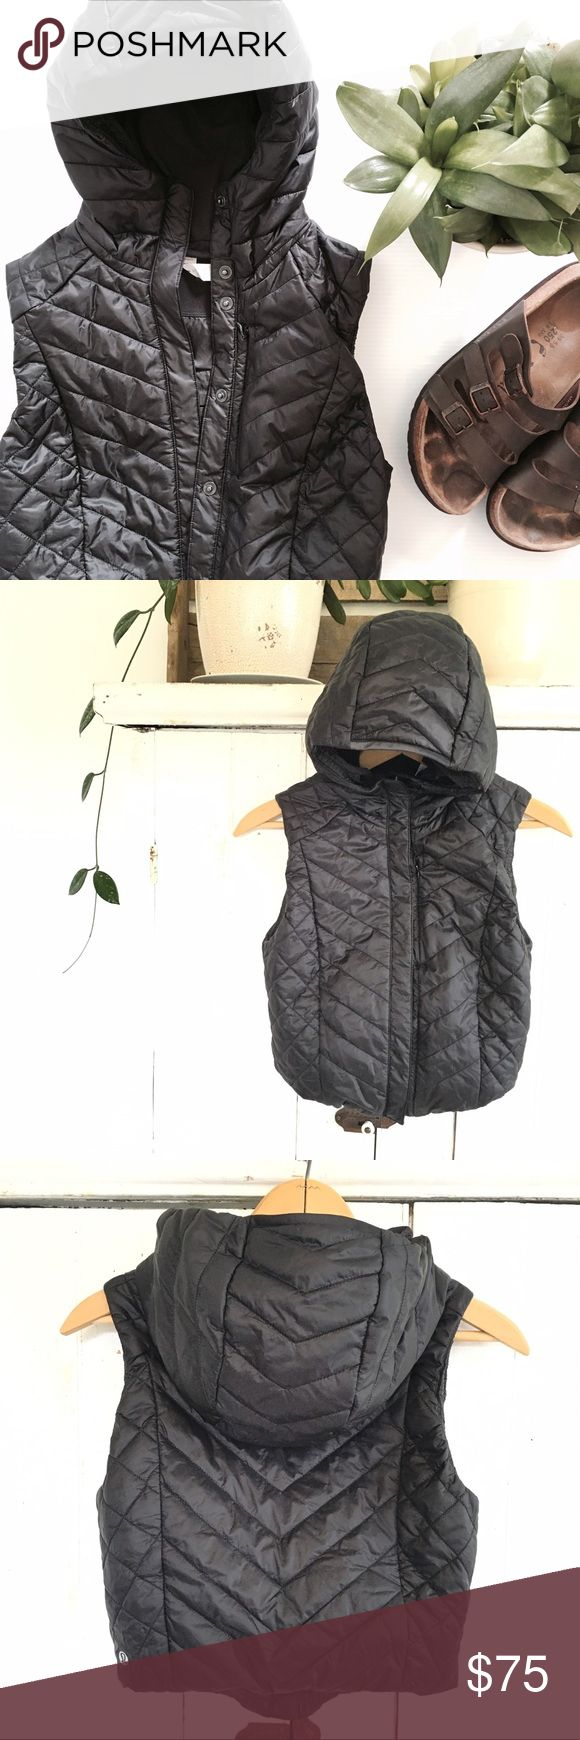 """🆕Listing! Lululemon vest • crop • Excellent condition! Lululemon hooded CROP vest. Size 2 • 16"""" bust • 15.5"""" long. This is meant to be short, please refer to measurements to ensure perfect fit! Front hidden pocket, and there also is a pocket on the inside back lining. Perfect for running! lululemon athletica Jackets & Coats Vests"""